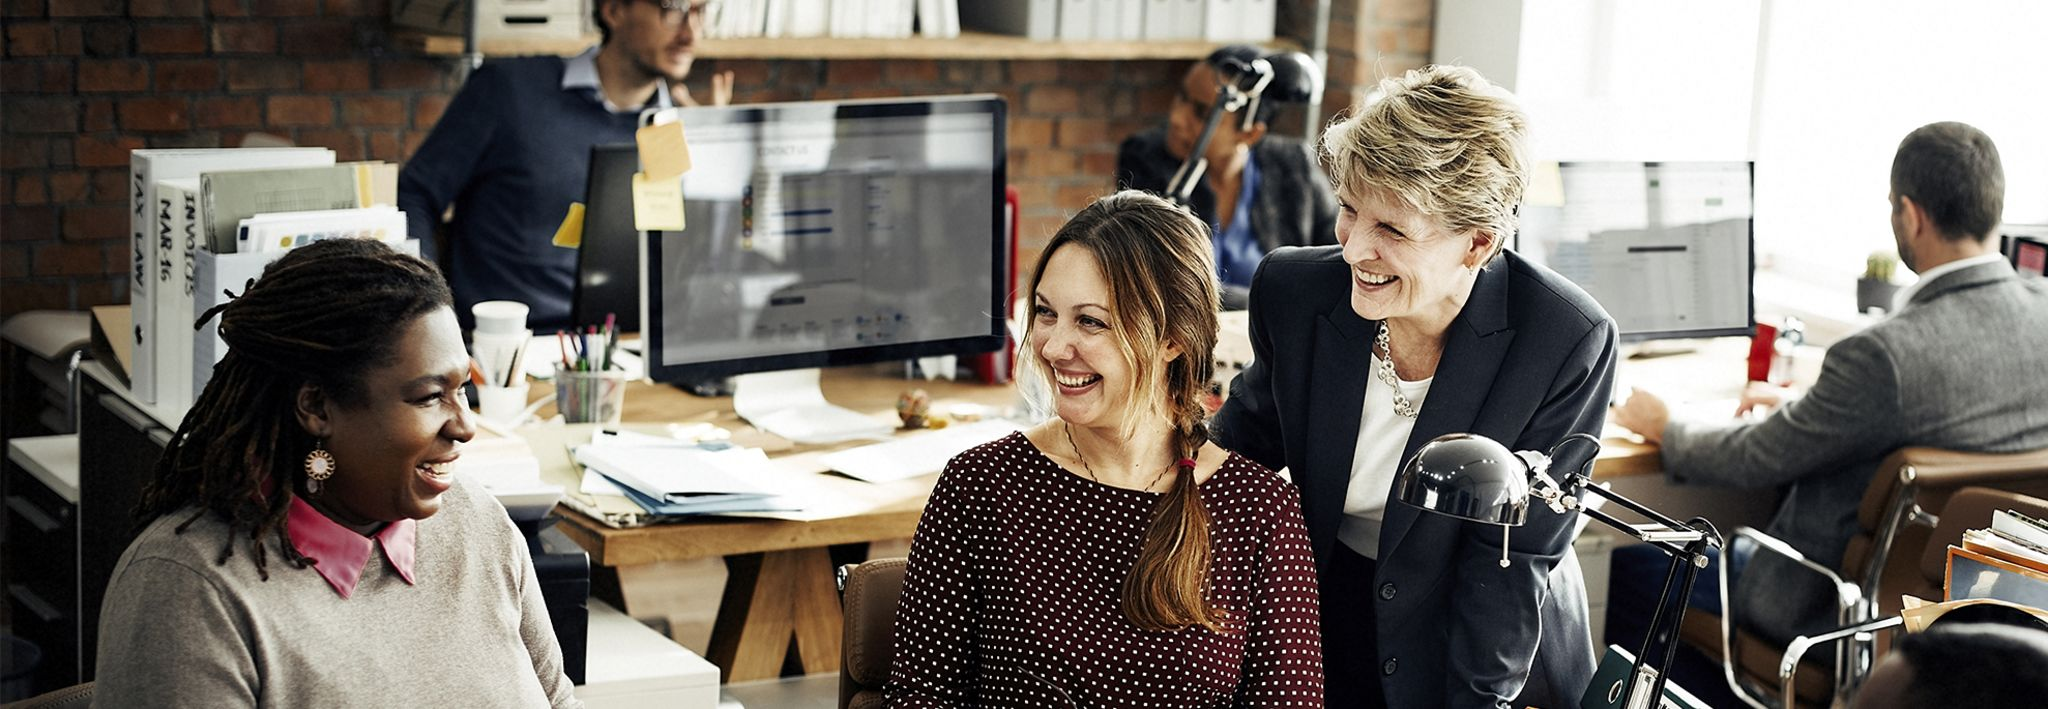 Three female professionals are talking and laughing together at work.